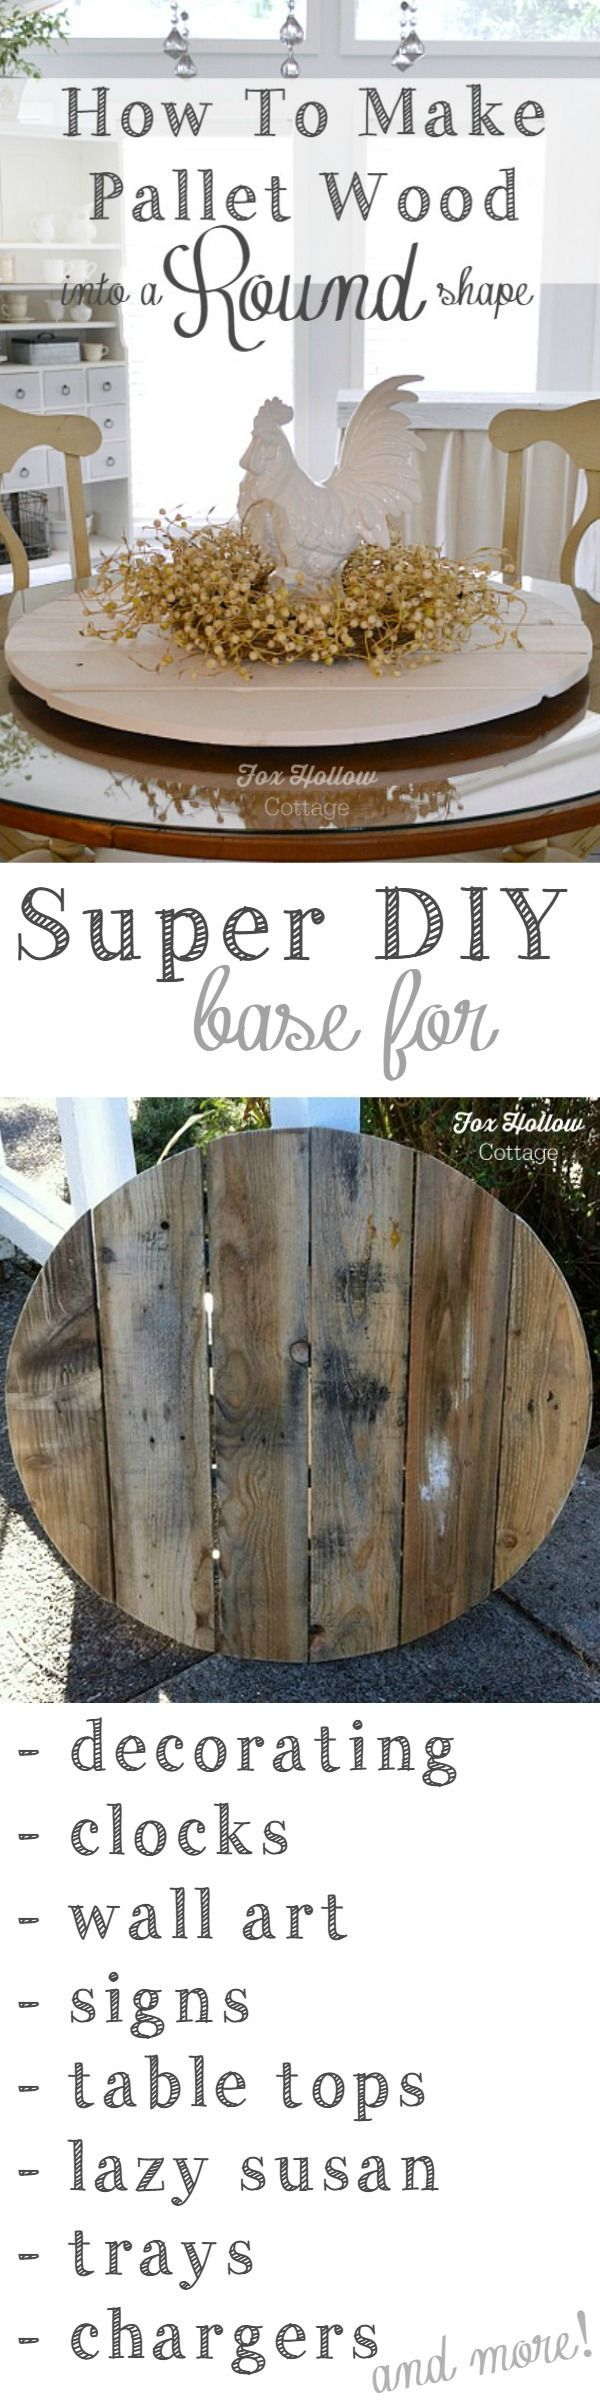 Wooden circles for crafts - How To Make Pallet Wood Into A Round Circle Shape